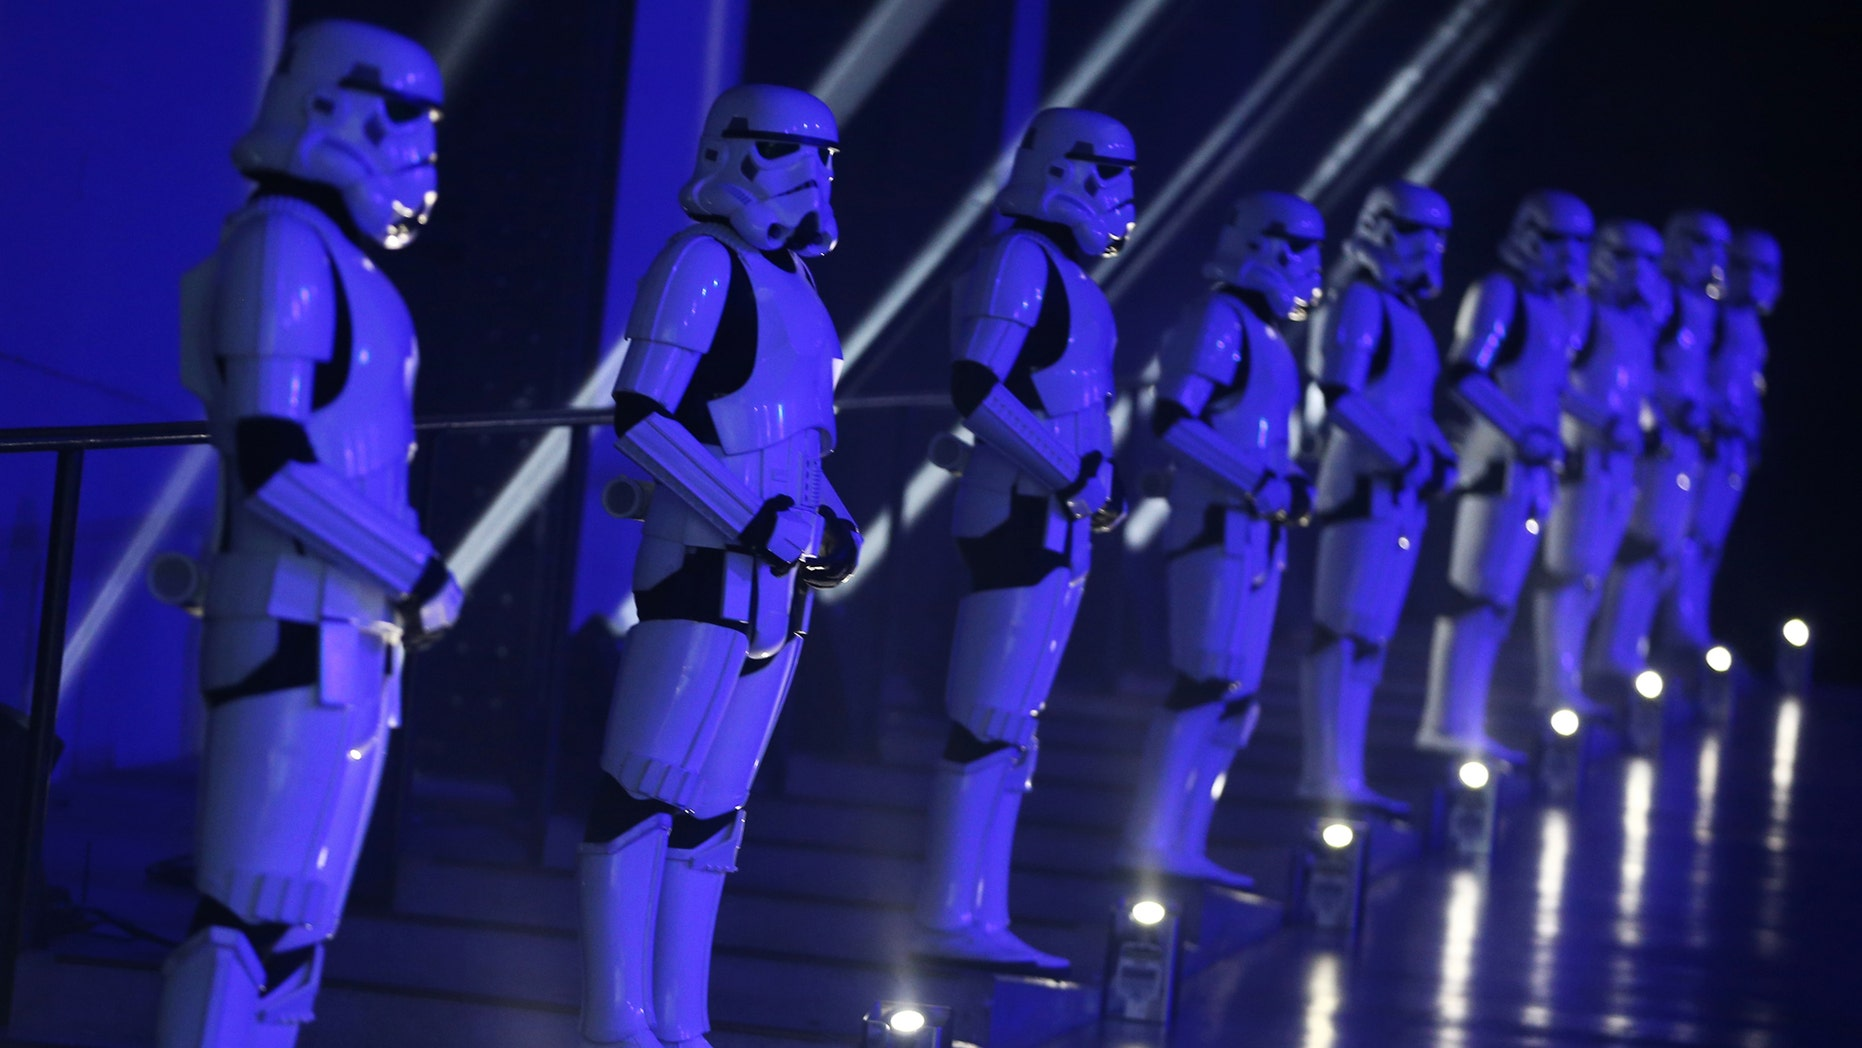 File photo: Actors in Storm Trooper costumes take part in the European Premiere of Star Wars Rogue One at the Tate Modern in London, Britain December 13, 2016. (REUTERS/Neil Hall)